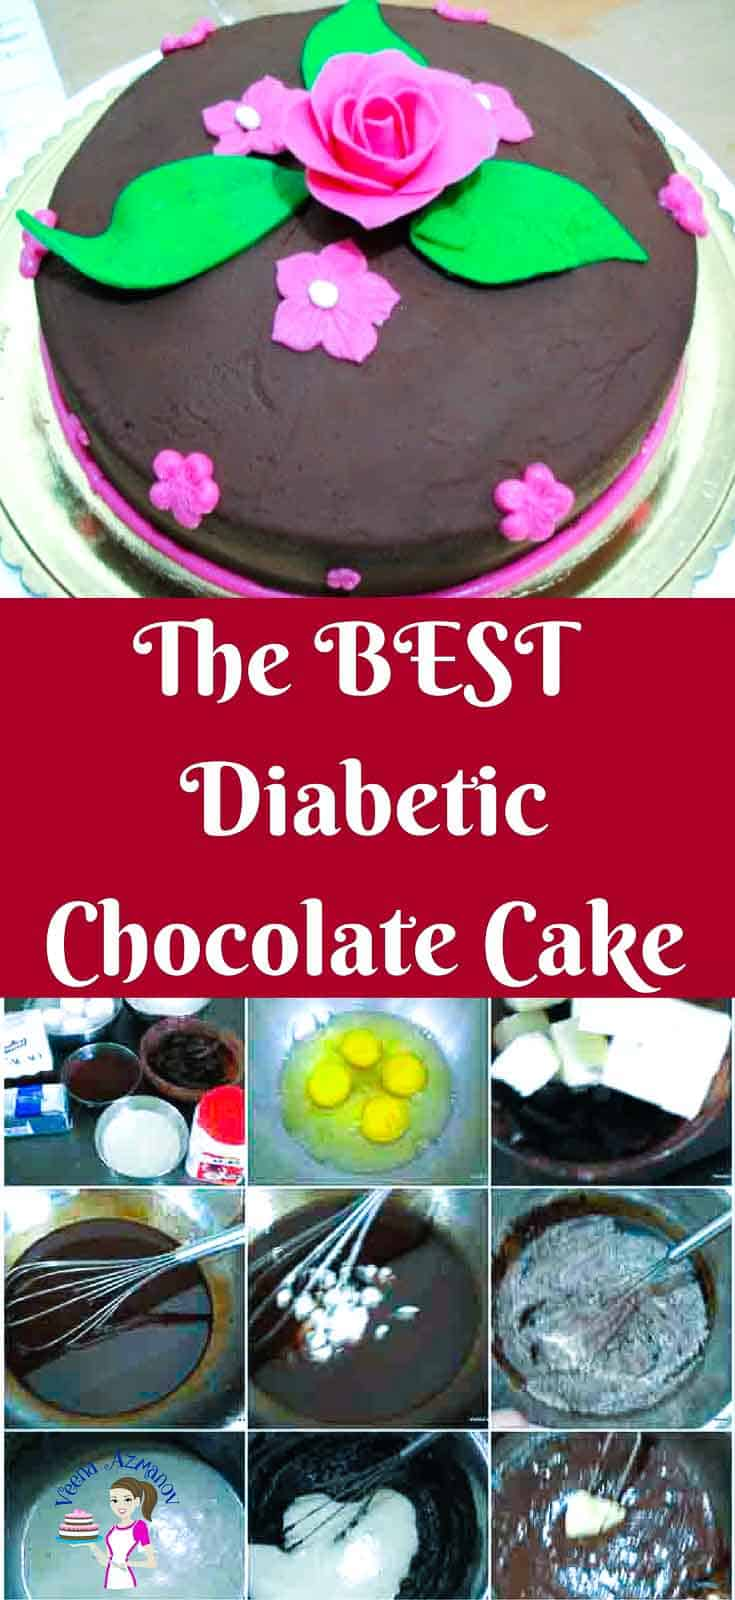 This Diabetic Chocolate Cake recipe is a chocolate lovers dream with it's rich sweet delicious and moist cake loaded with a rich creamy chocolate frosting. There's very simple ingredients and very little effort involved to make this cake more often than you plan.